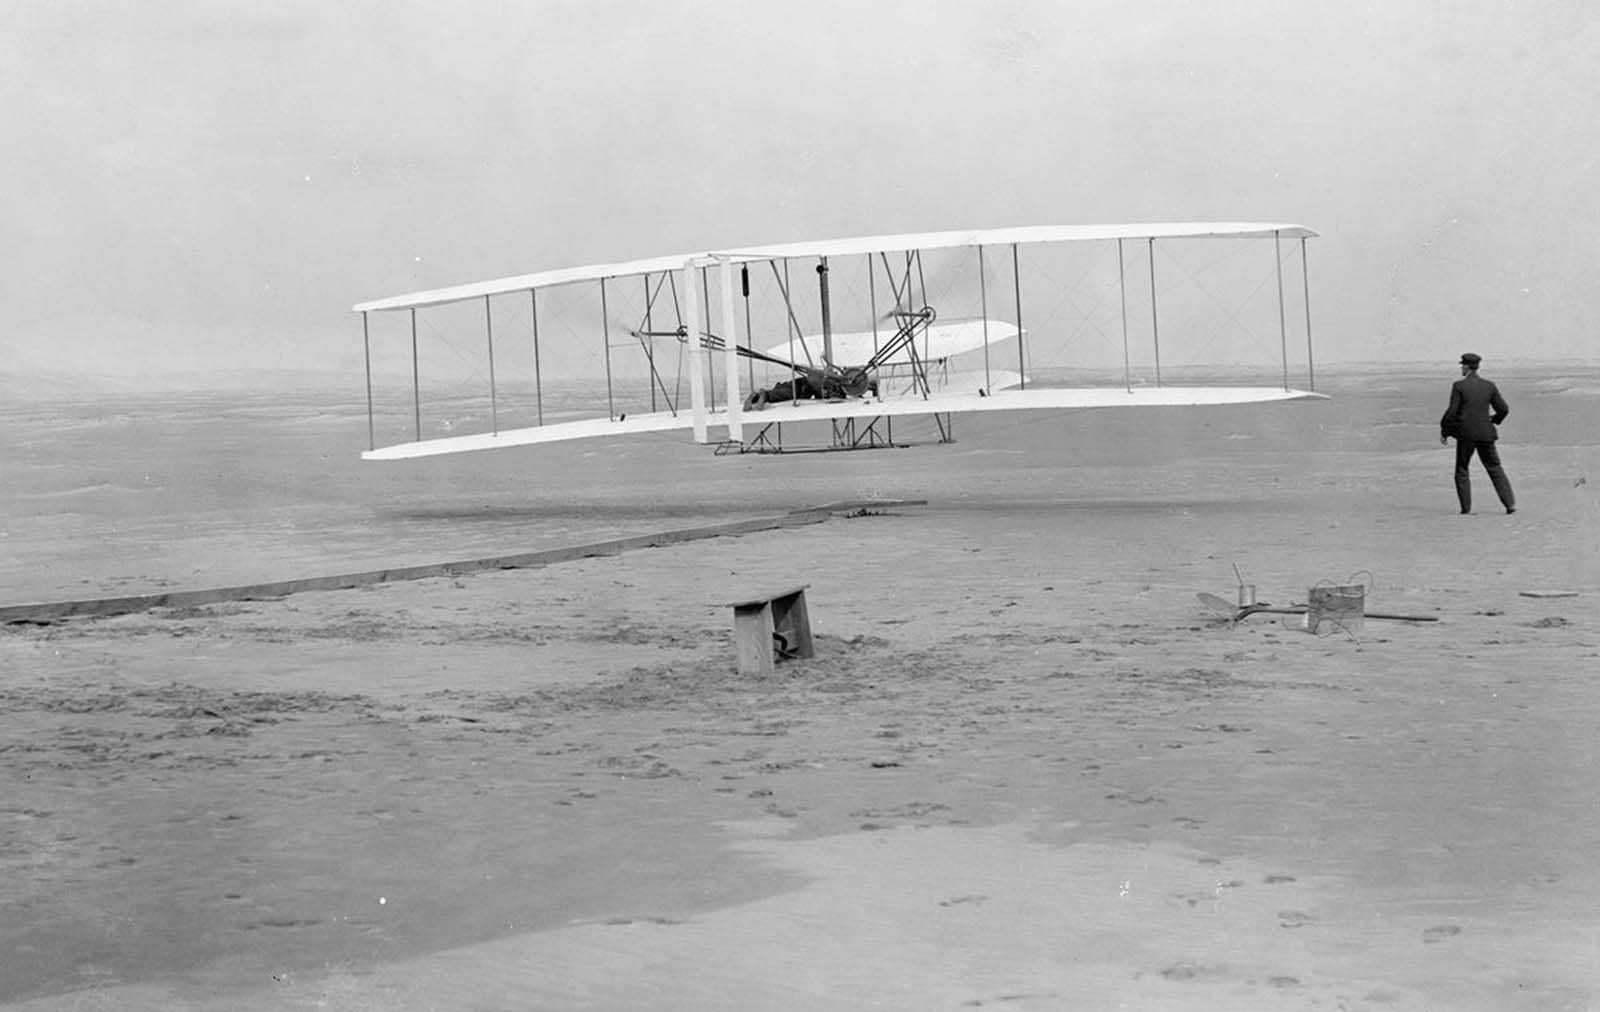 First flight: 120 feet in 12 seconds, on December 17, 1903. This photograph shows man's first powered, controlled, sustained flight. Orville Wright at the controls of the machine, lying prone on the lower wing with hips in the cradle which operated the wing-warping mechanism. Wilbur Wright running alongside to balance the machine, has just released his hold on the forward upright of the right wing. The starting rail, the wing-rest, a coil box, and other items needed for flight preparation are visible behind the machine. Orville Wright preset the camera and had John T. Daniels squeeze the rubber bulb, tripping the shutter.